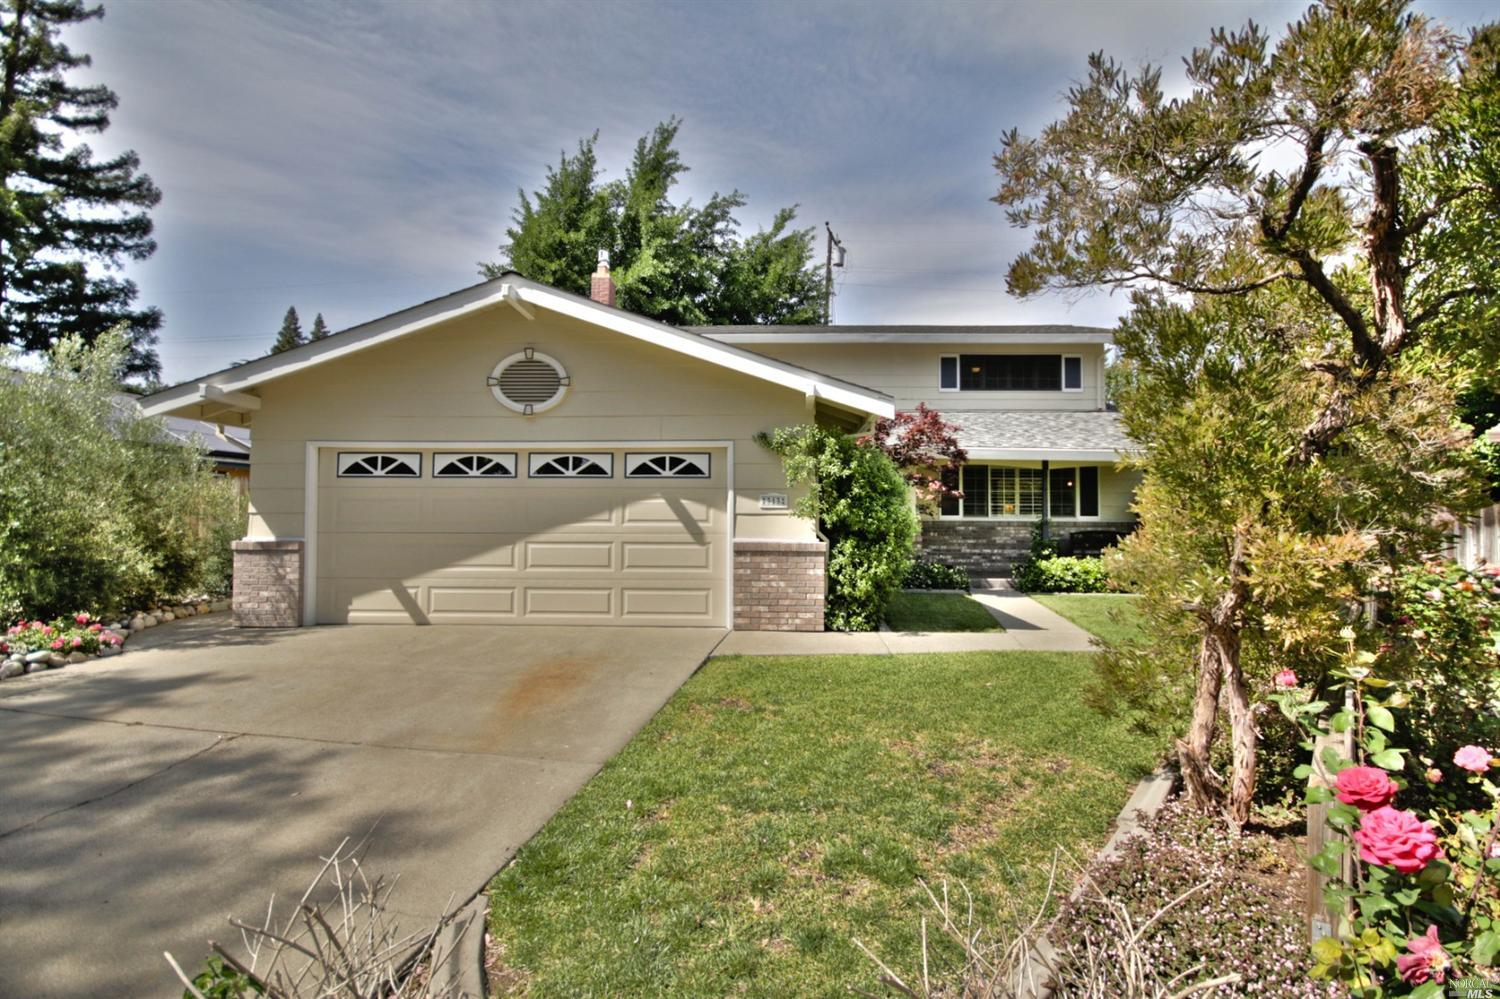 313 Nile Ct, Vacaville, CA